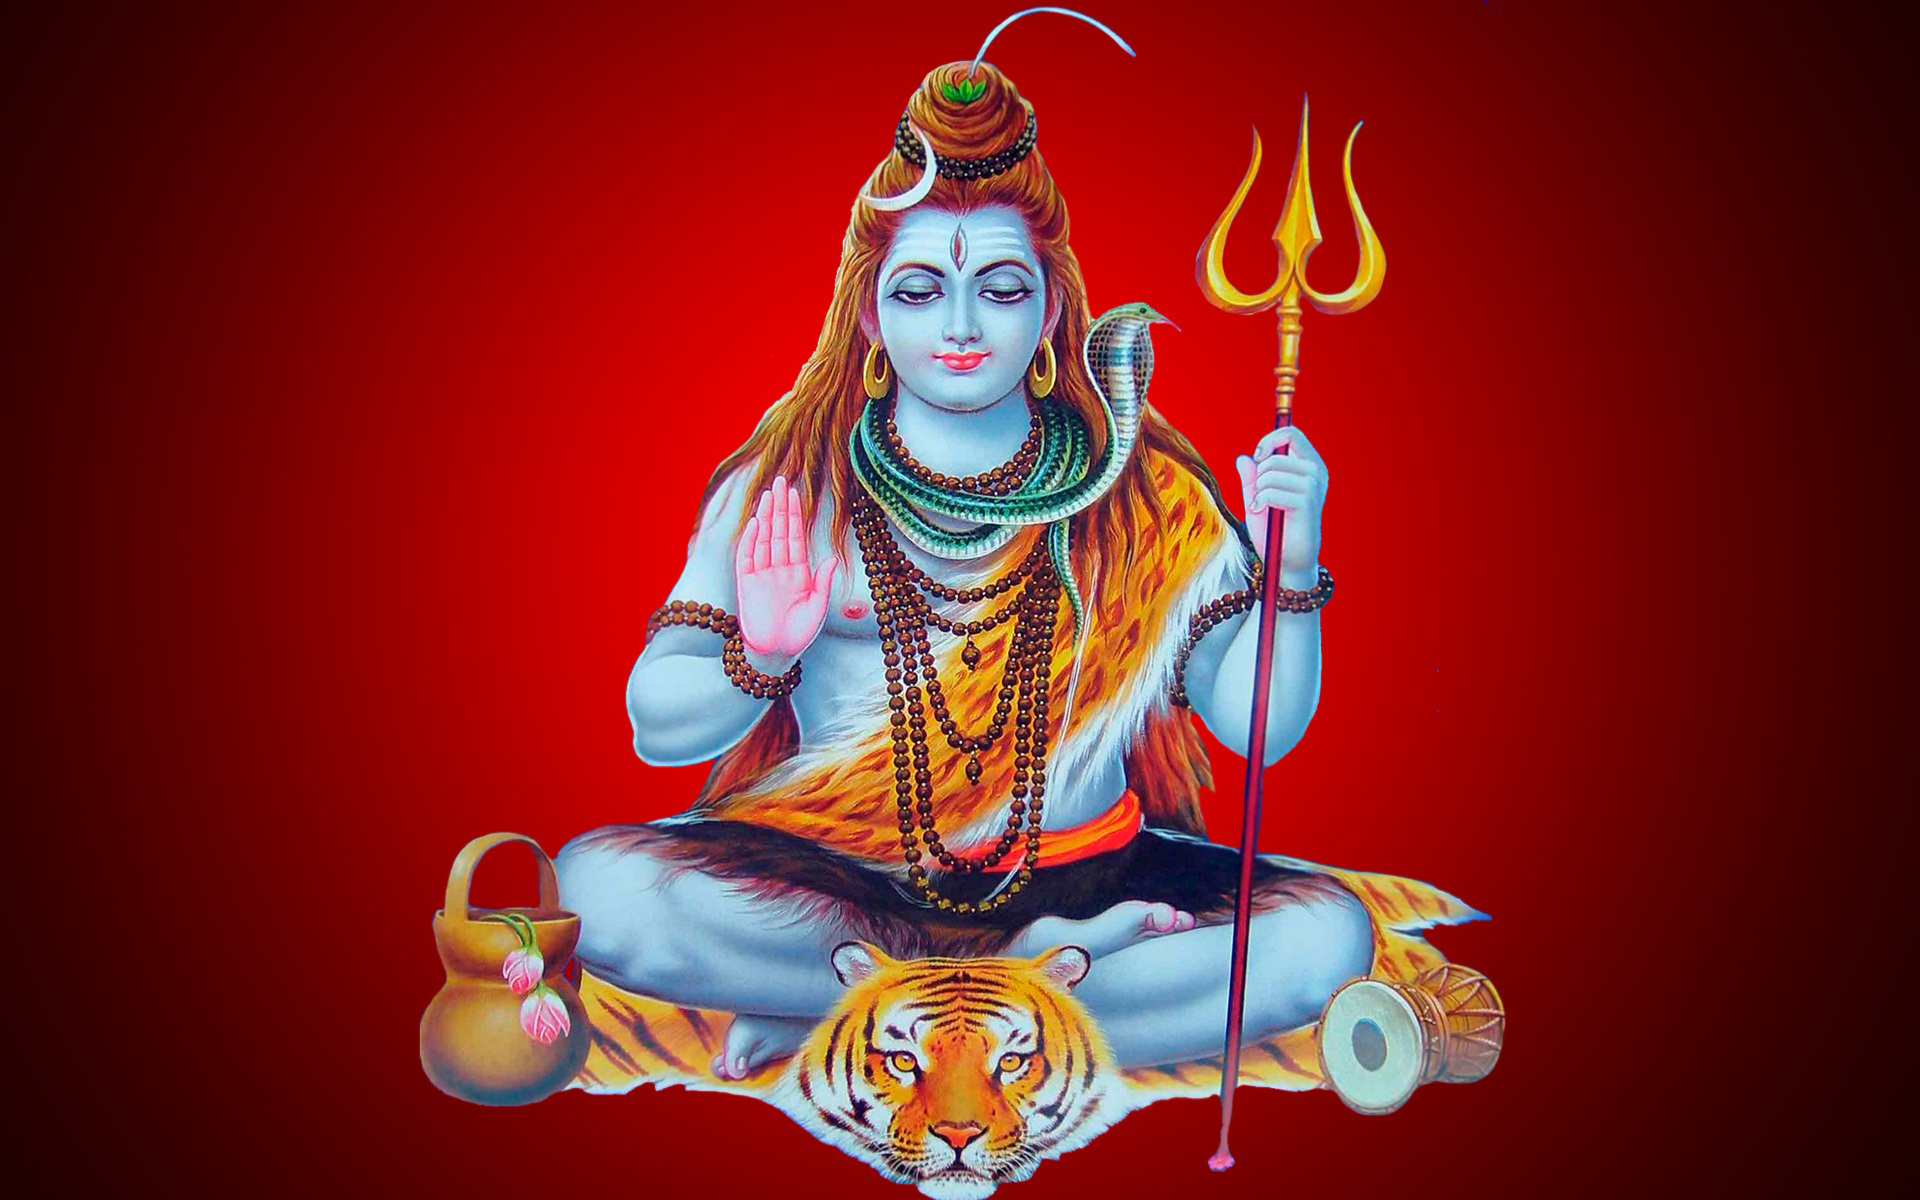 Shivaratri Wallpapers,Free Shivaratri Wallpapers,Shivaratri Wall Paper